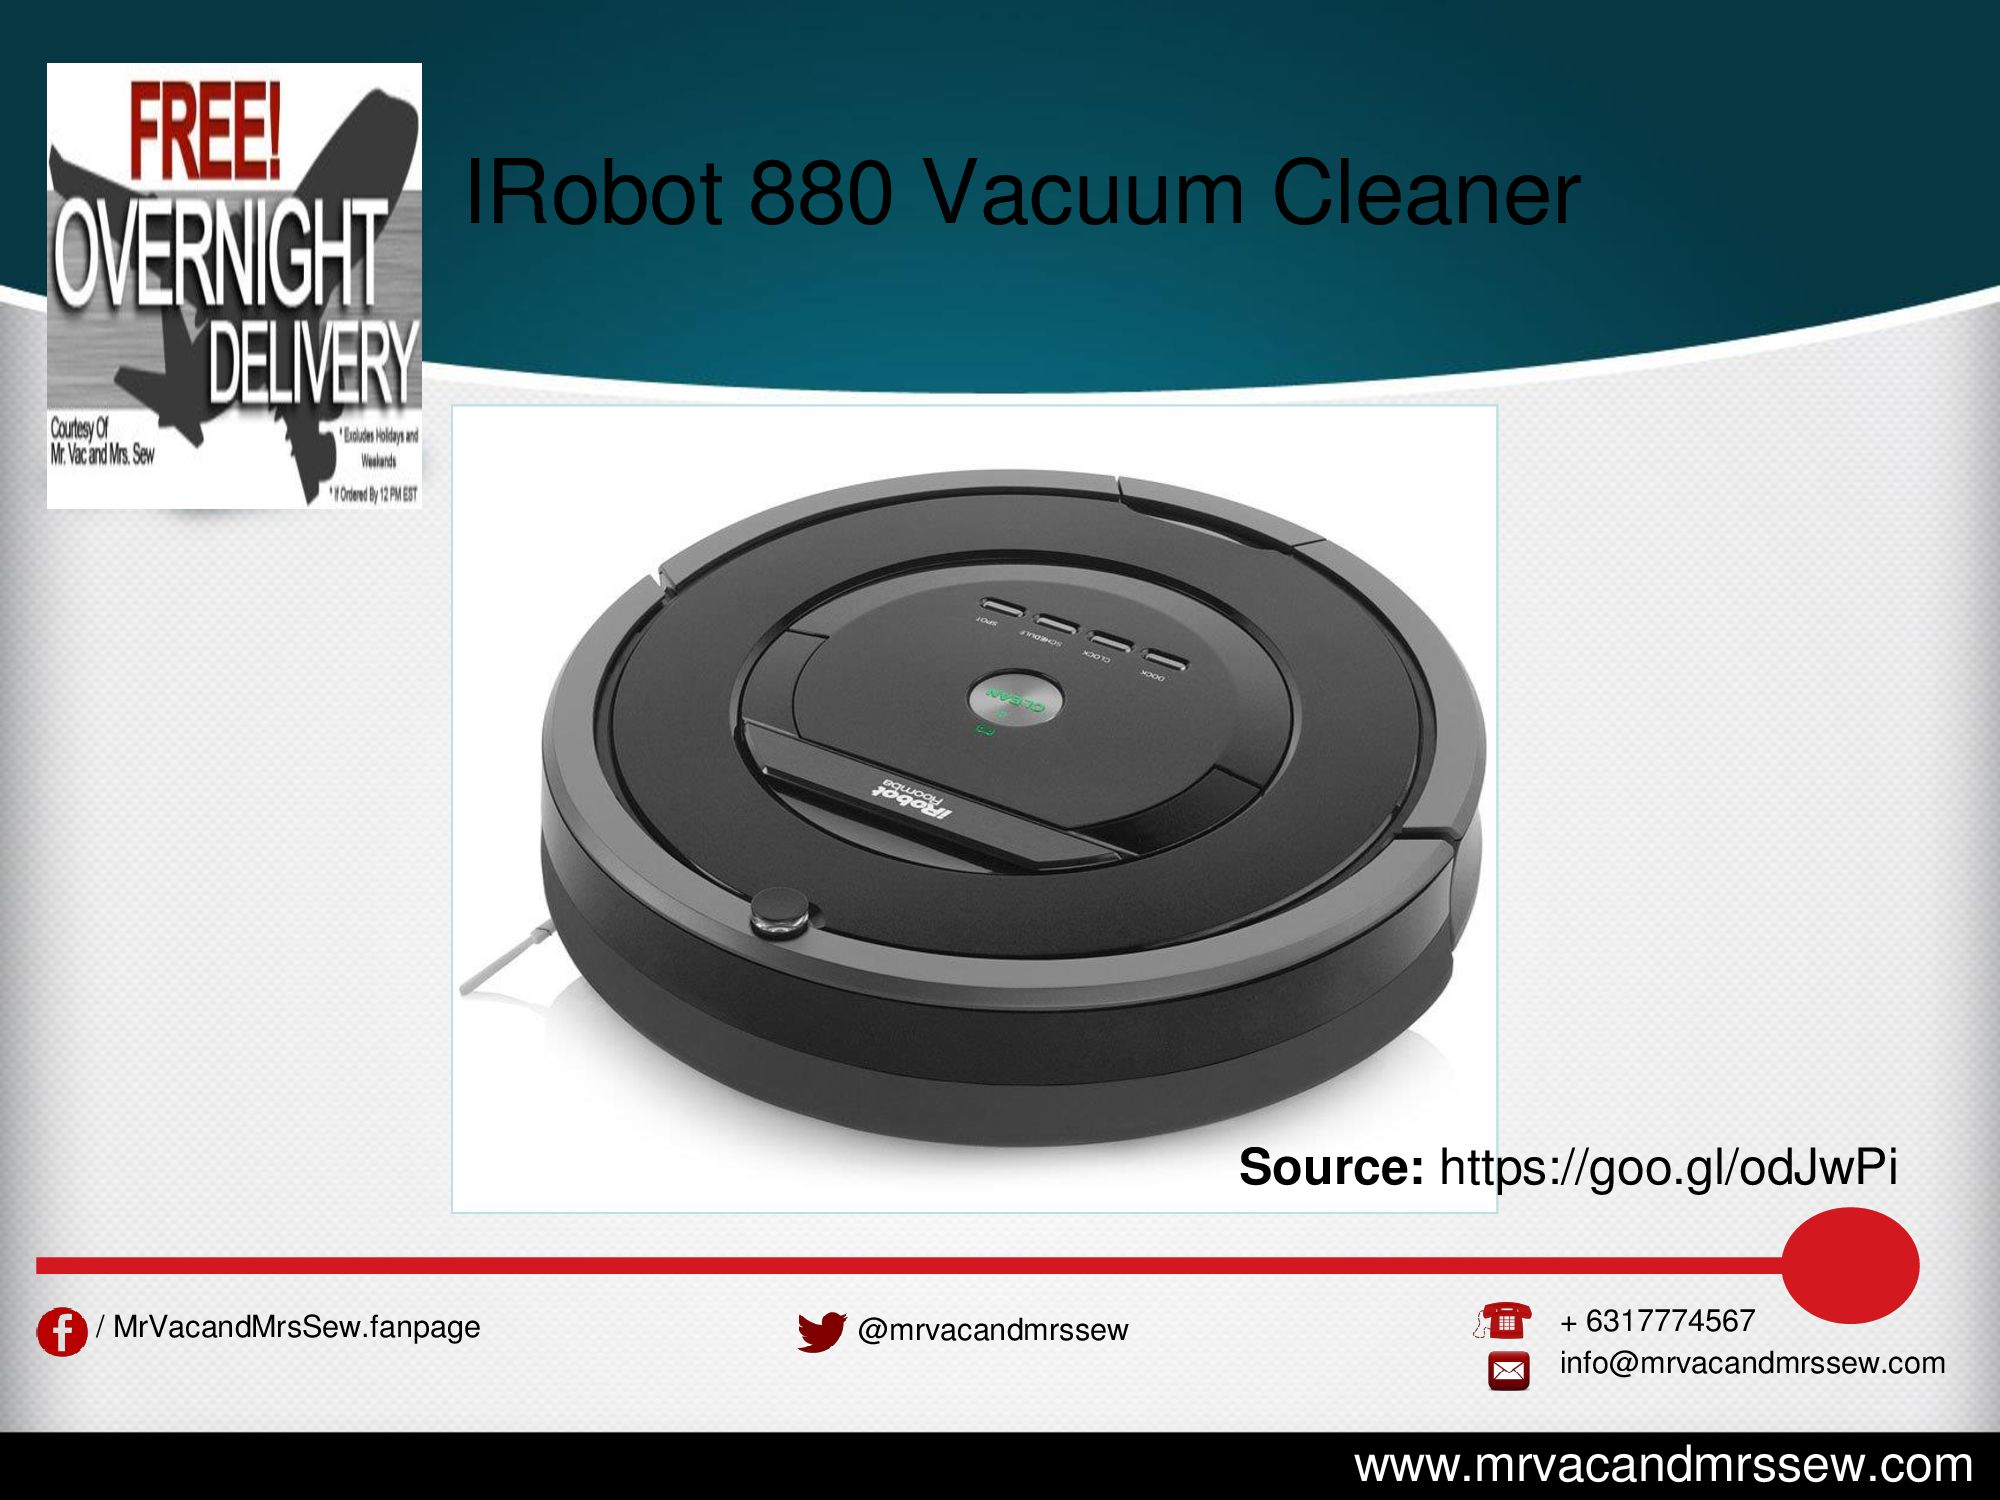 Experience The Effortless Cleaning With Irobot Vacuum Cleaner